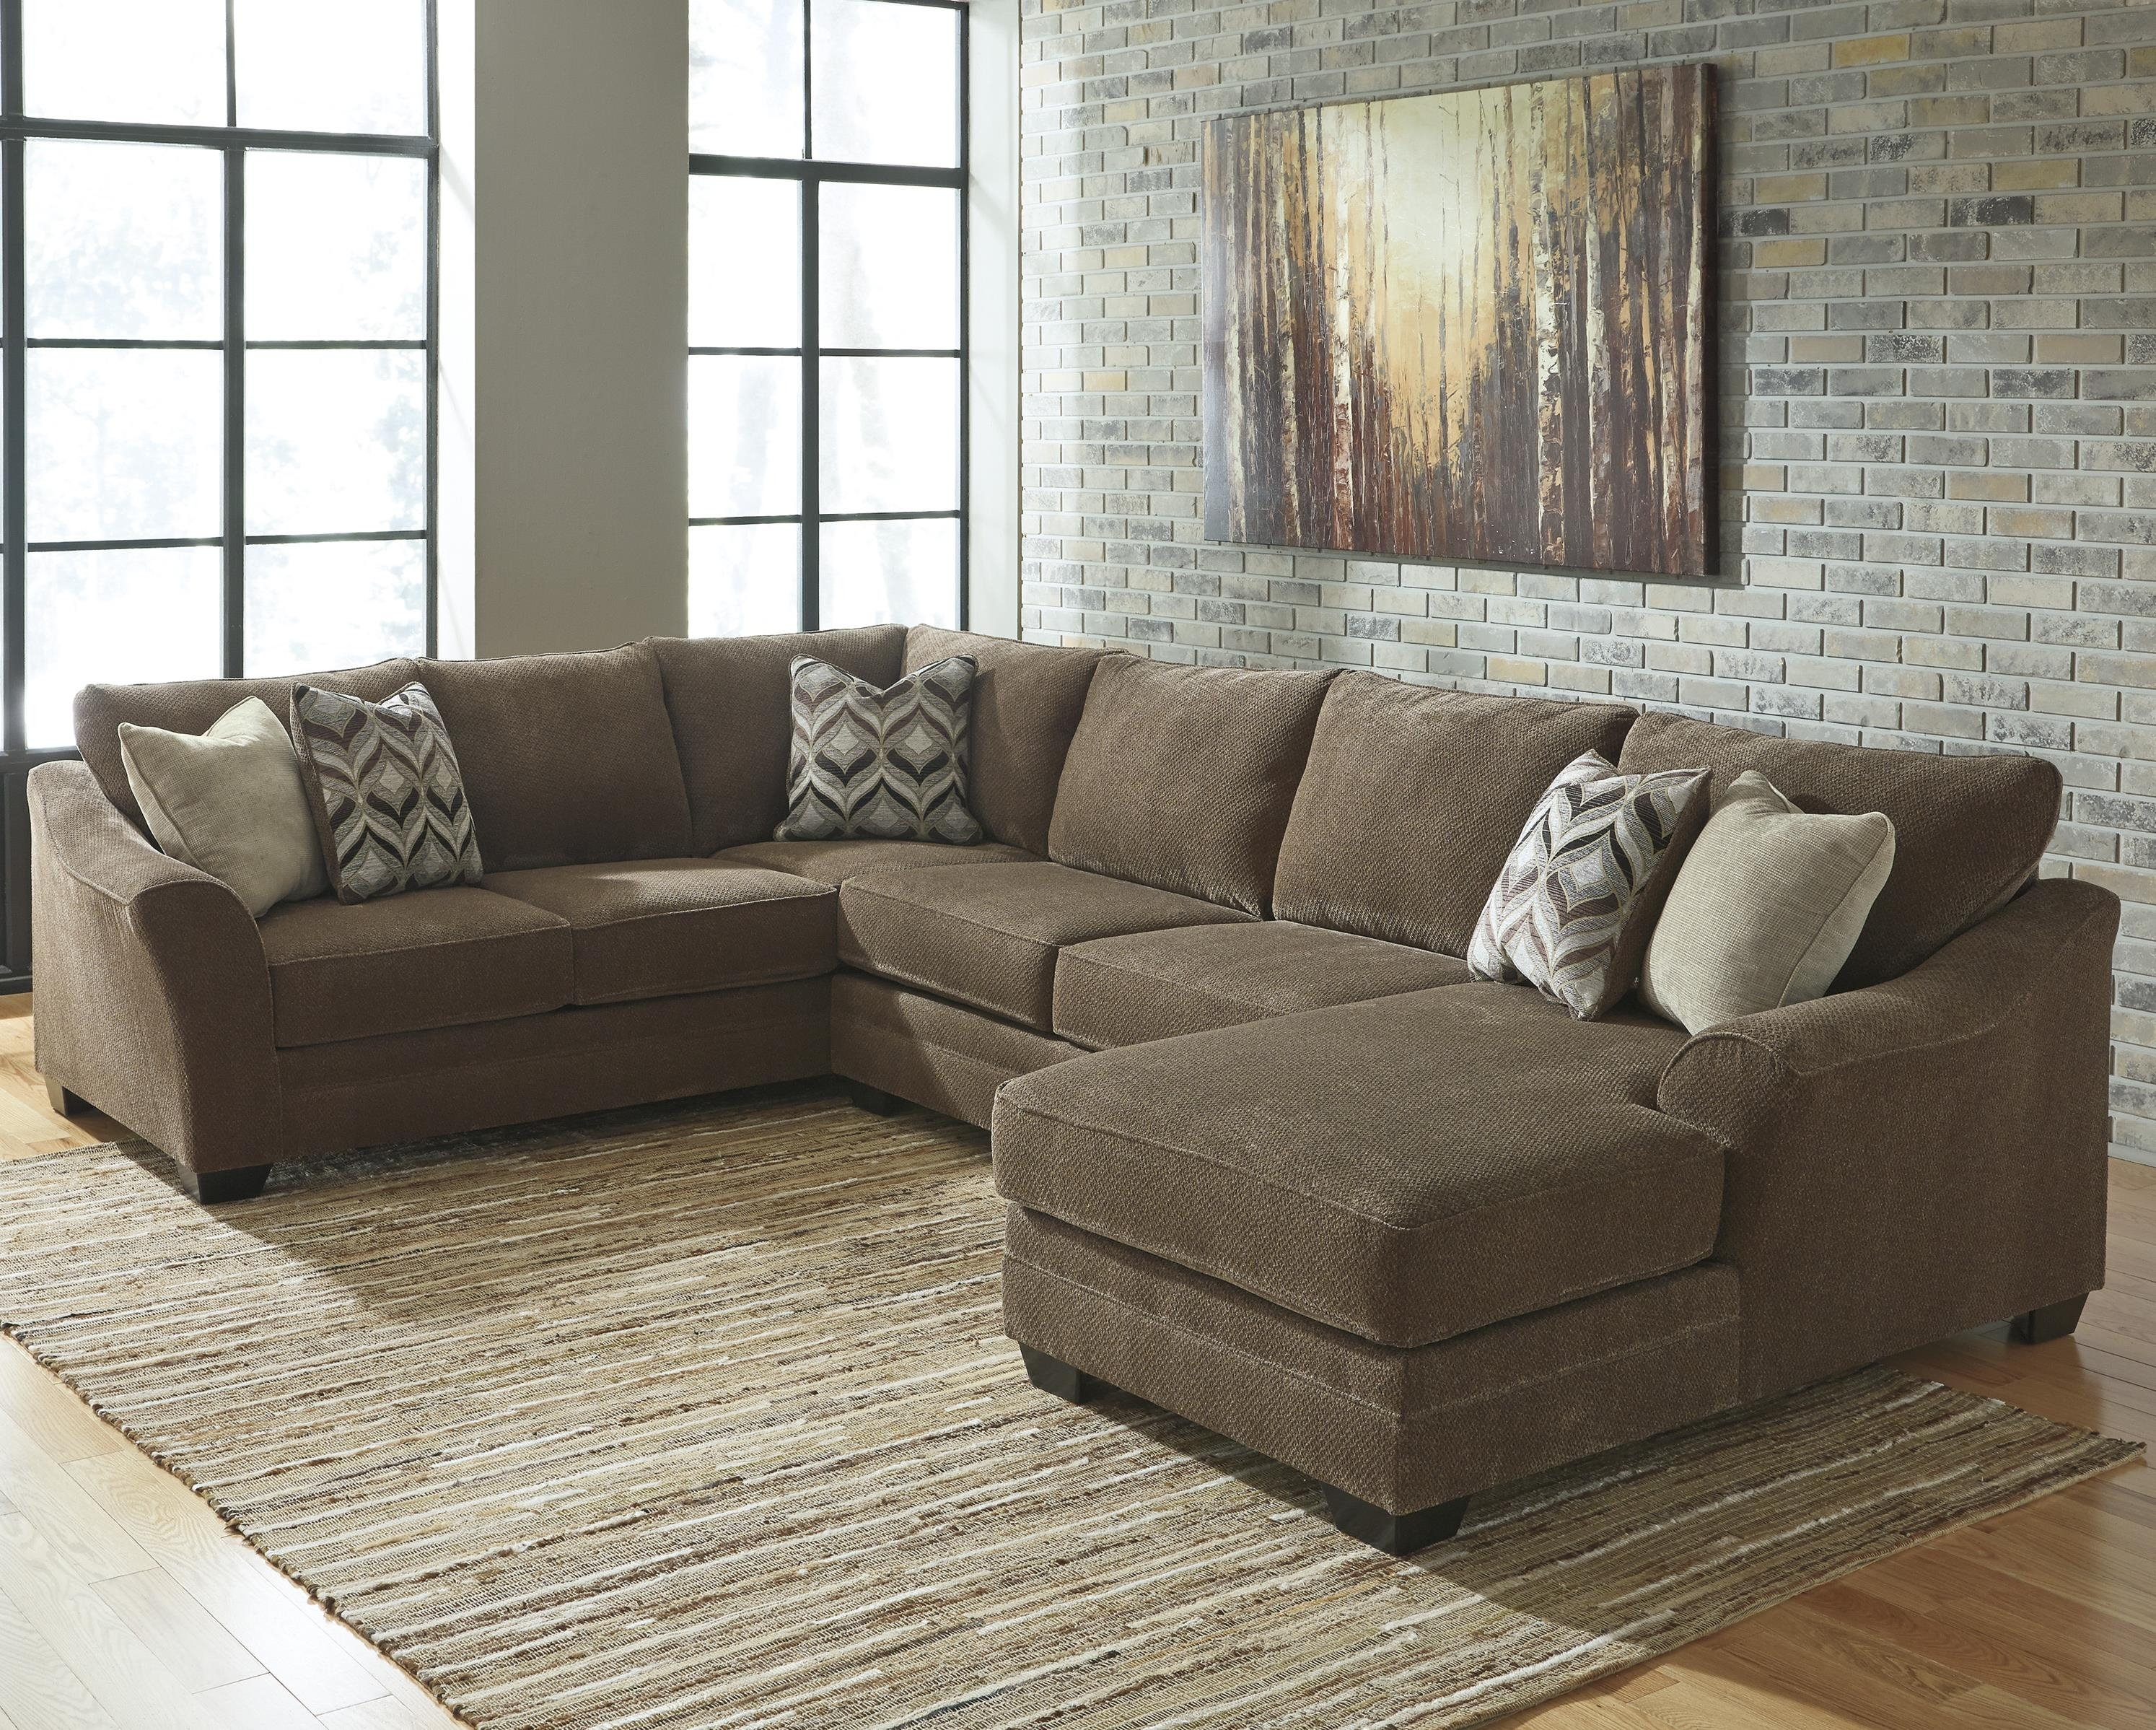 3 Piece Sectional – Locsbyhelenelorasa With Regard To Delano Smoke 3 Piece Sectionals (View 15 of 25)